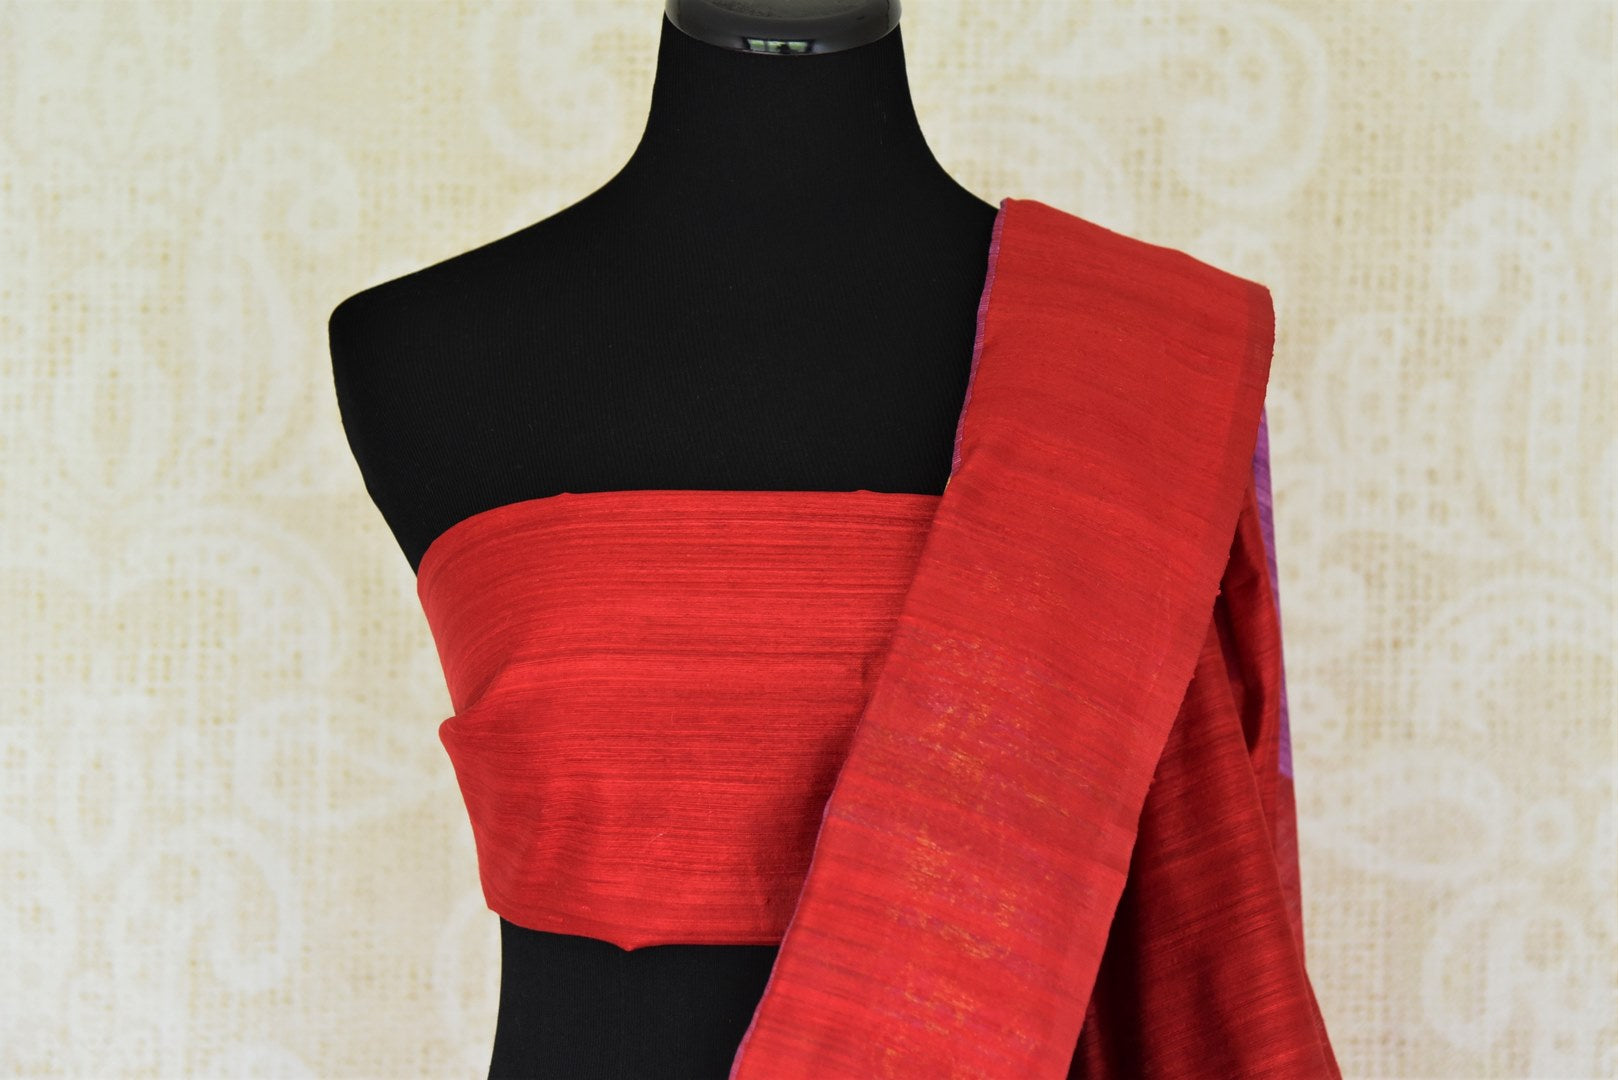 Buy purple matka Banarasi saree online in USA with red border. Give your Indian look an elegant touch with beautiful Indian Banarasi sarees available at Pure Elegance Indian clothing store in USA or shop online.-blouse pallu